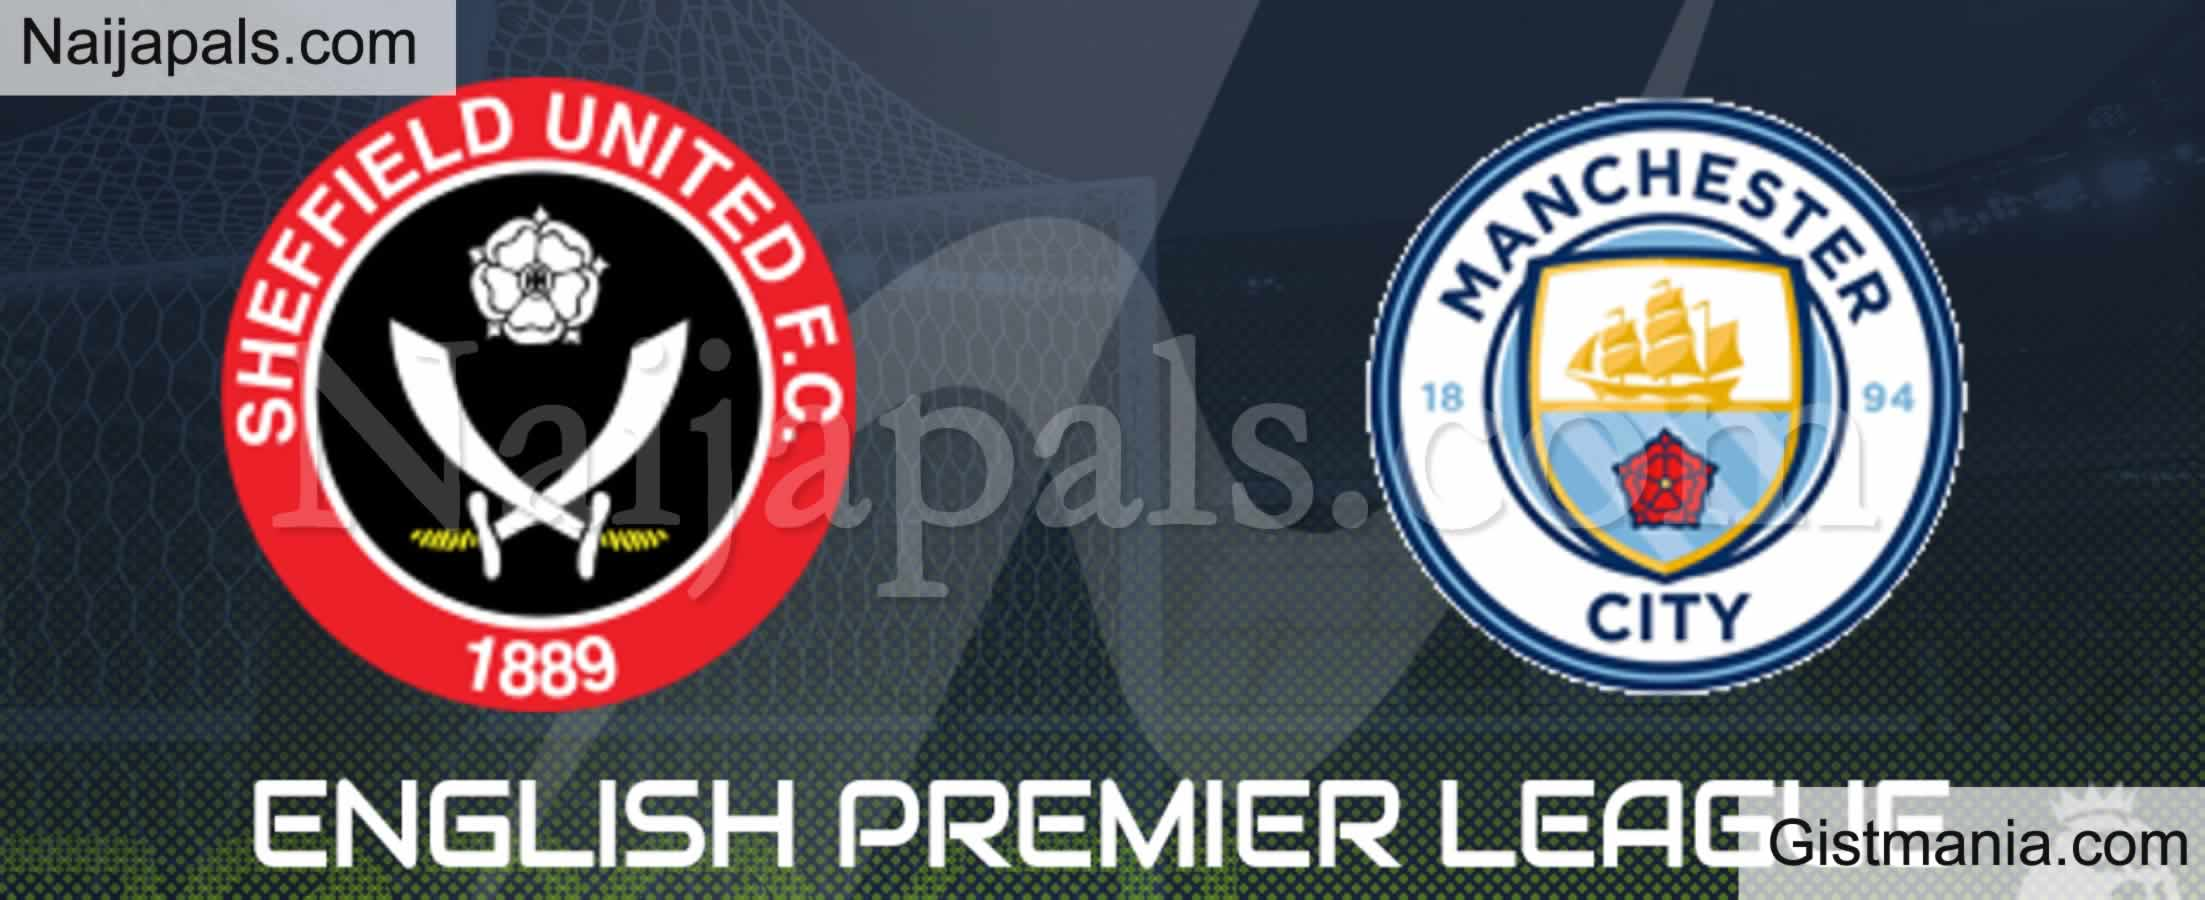 <img alt='.' class='lazyload' data-src='https://img.gistmania.com/emot/soccer.gif' /> <b>Sheffield U v Manchester City : English Premier League Match, Team News, Goal Scorers and Stats</b>